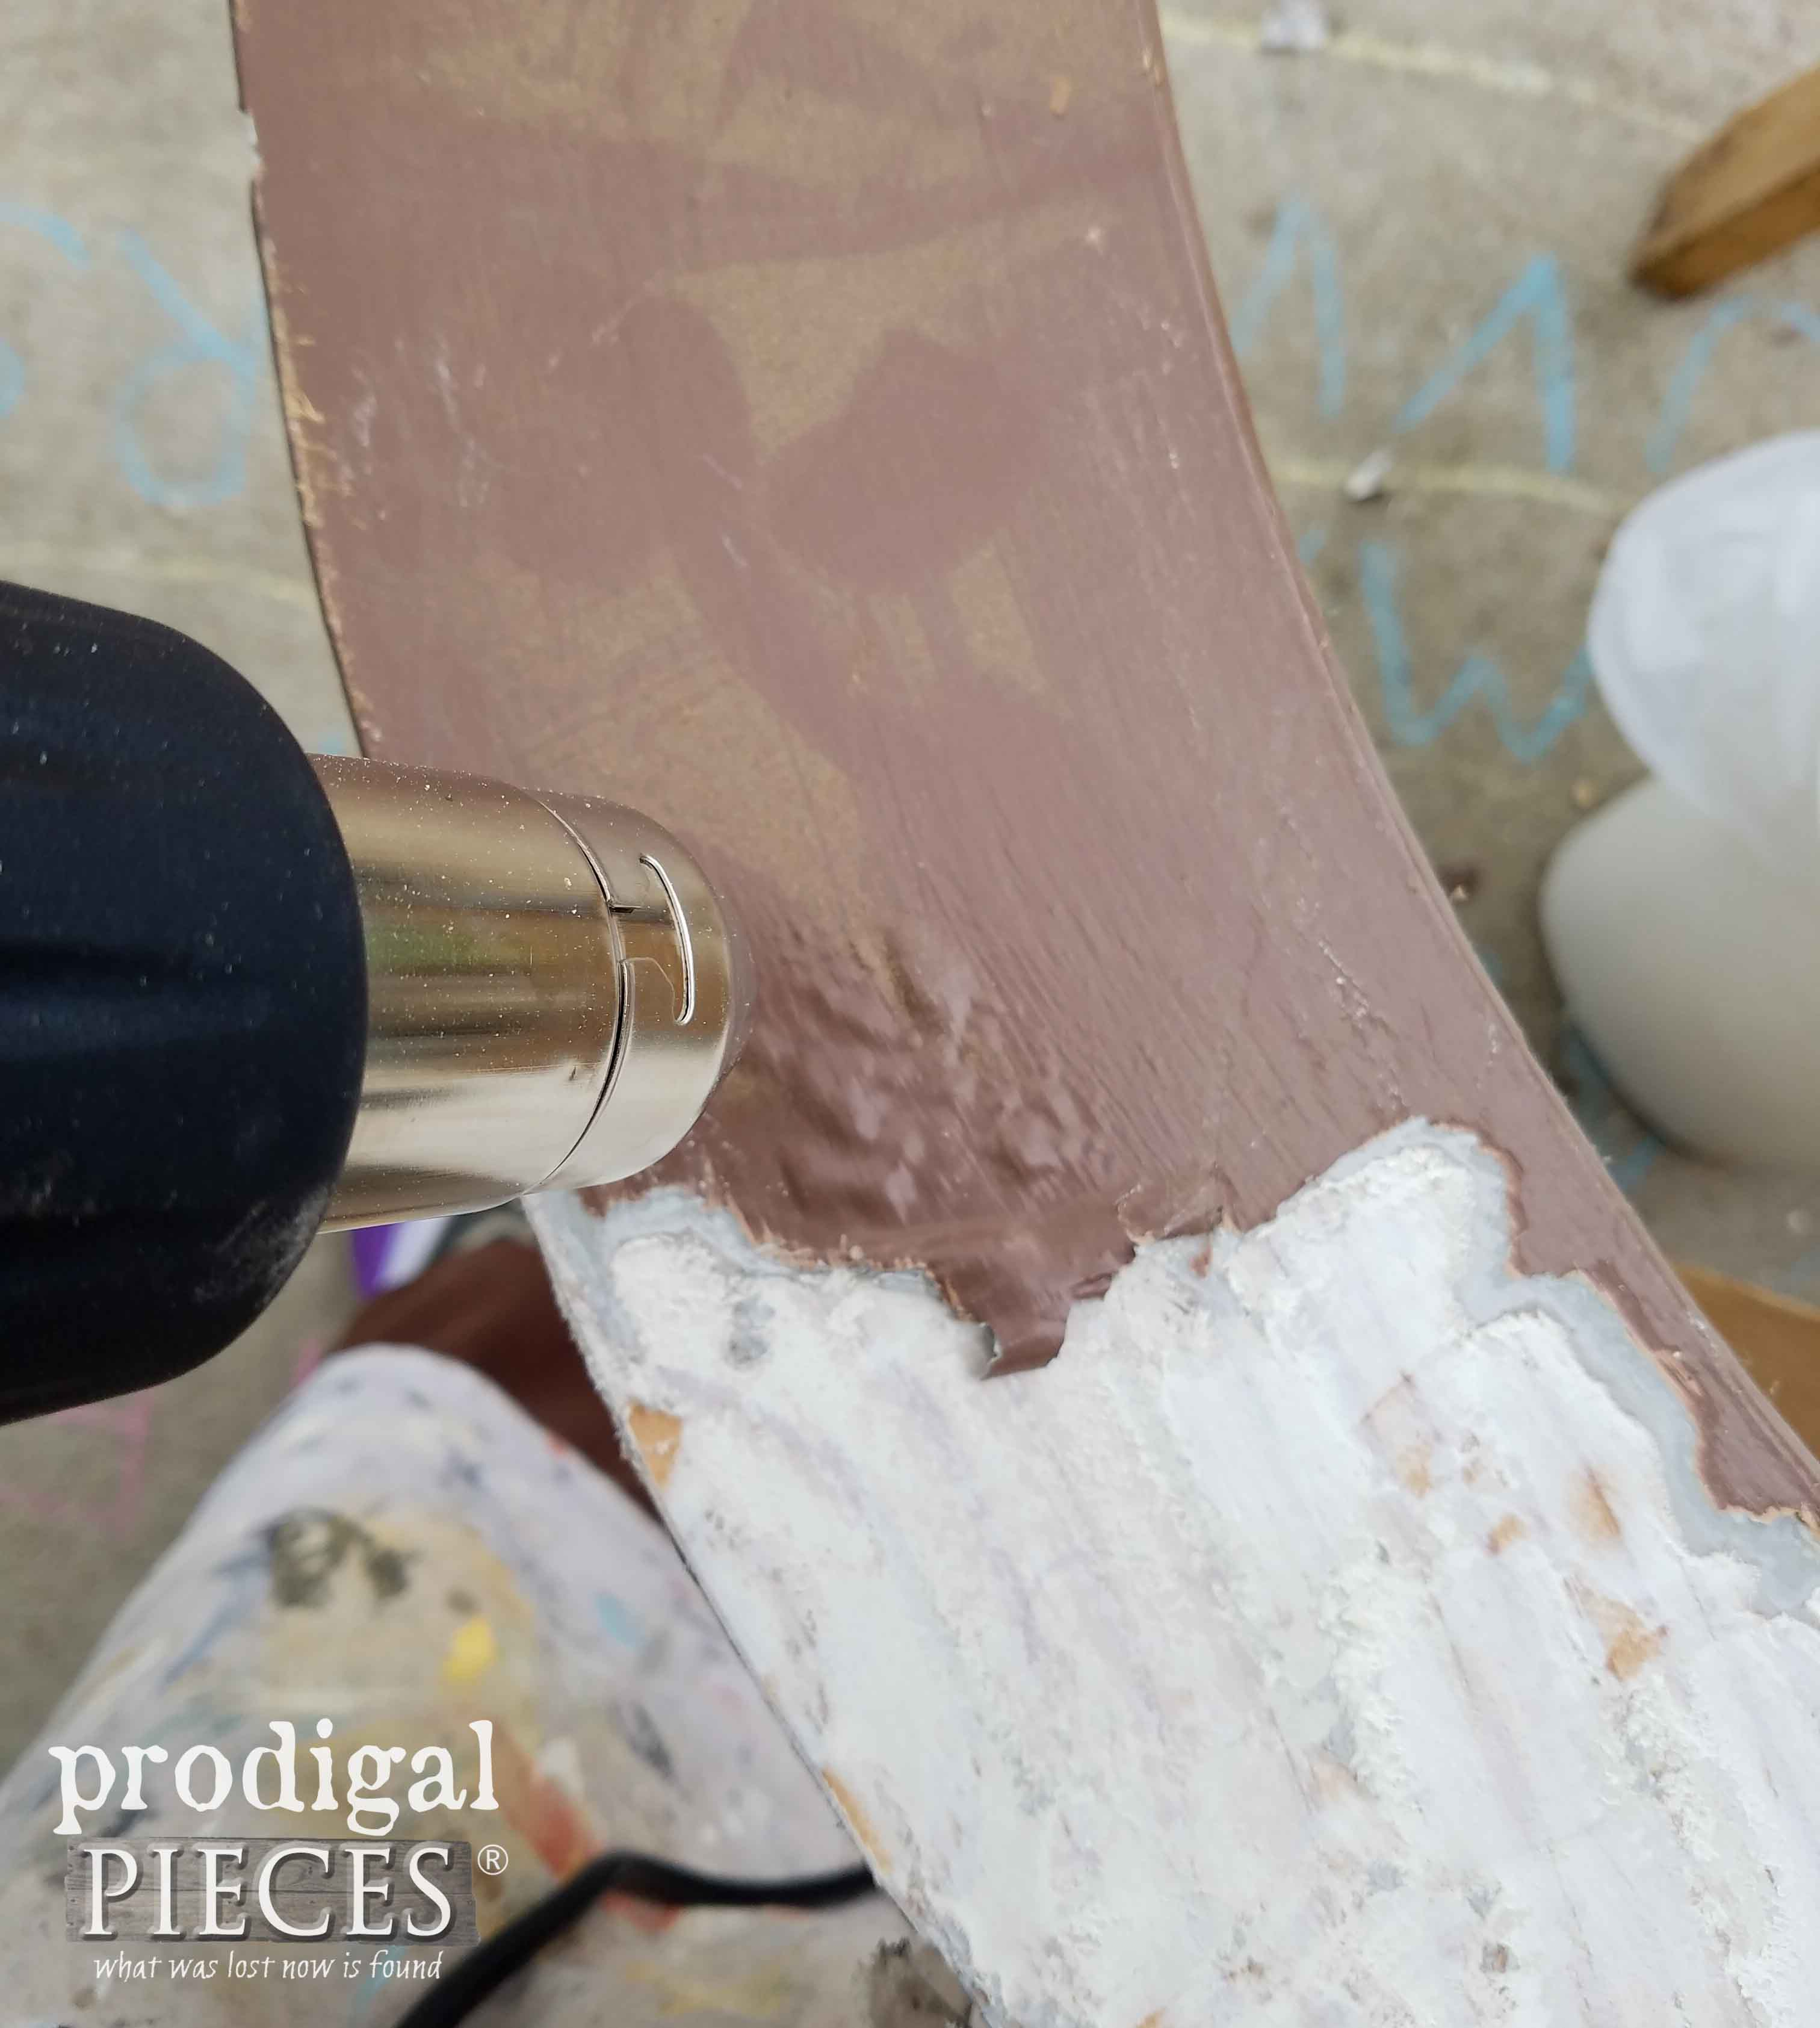 Bubbling Paint Using the HomeRight Digital Heat Gun by Prodigal Pieces | prodigalpieces.com